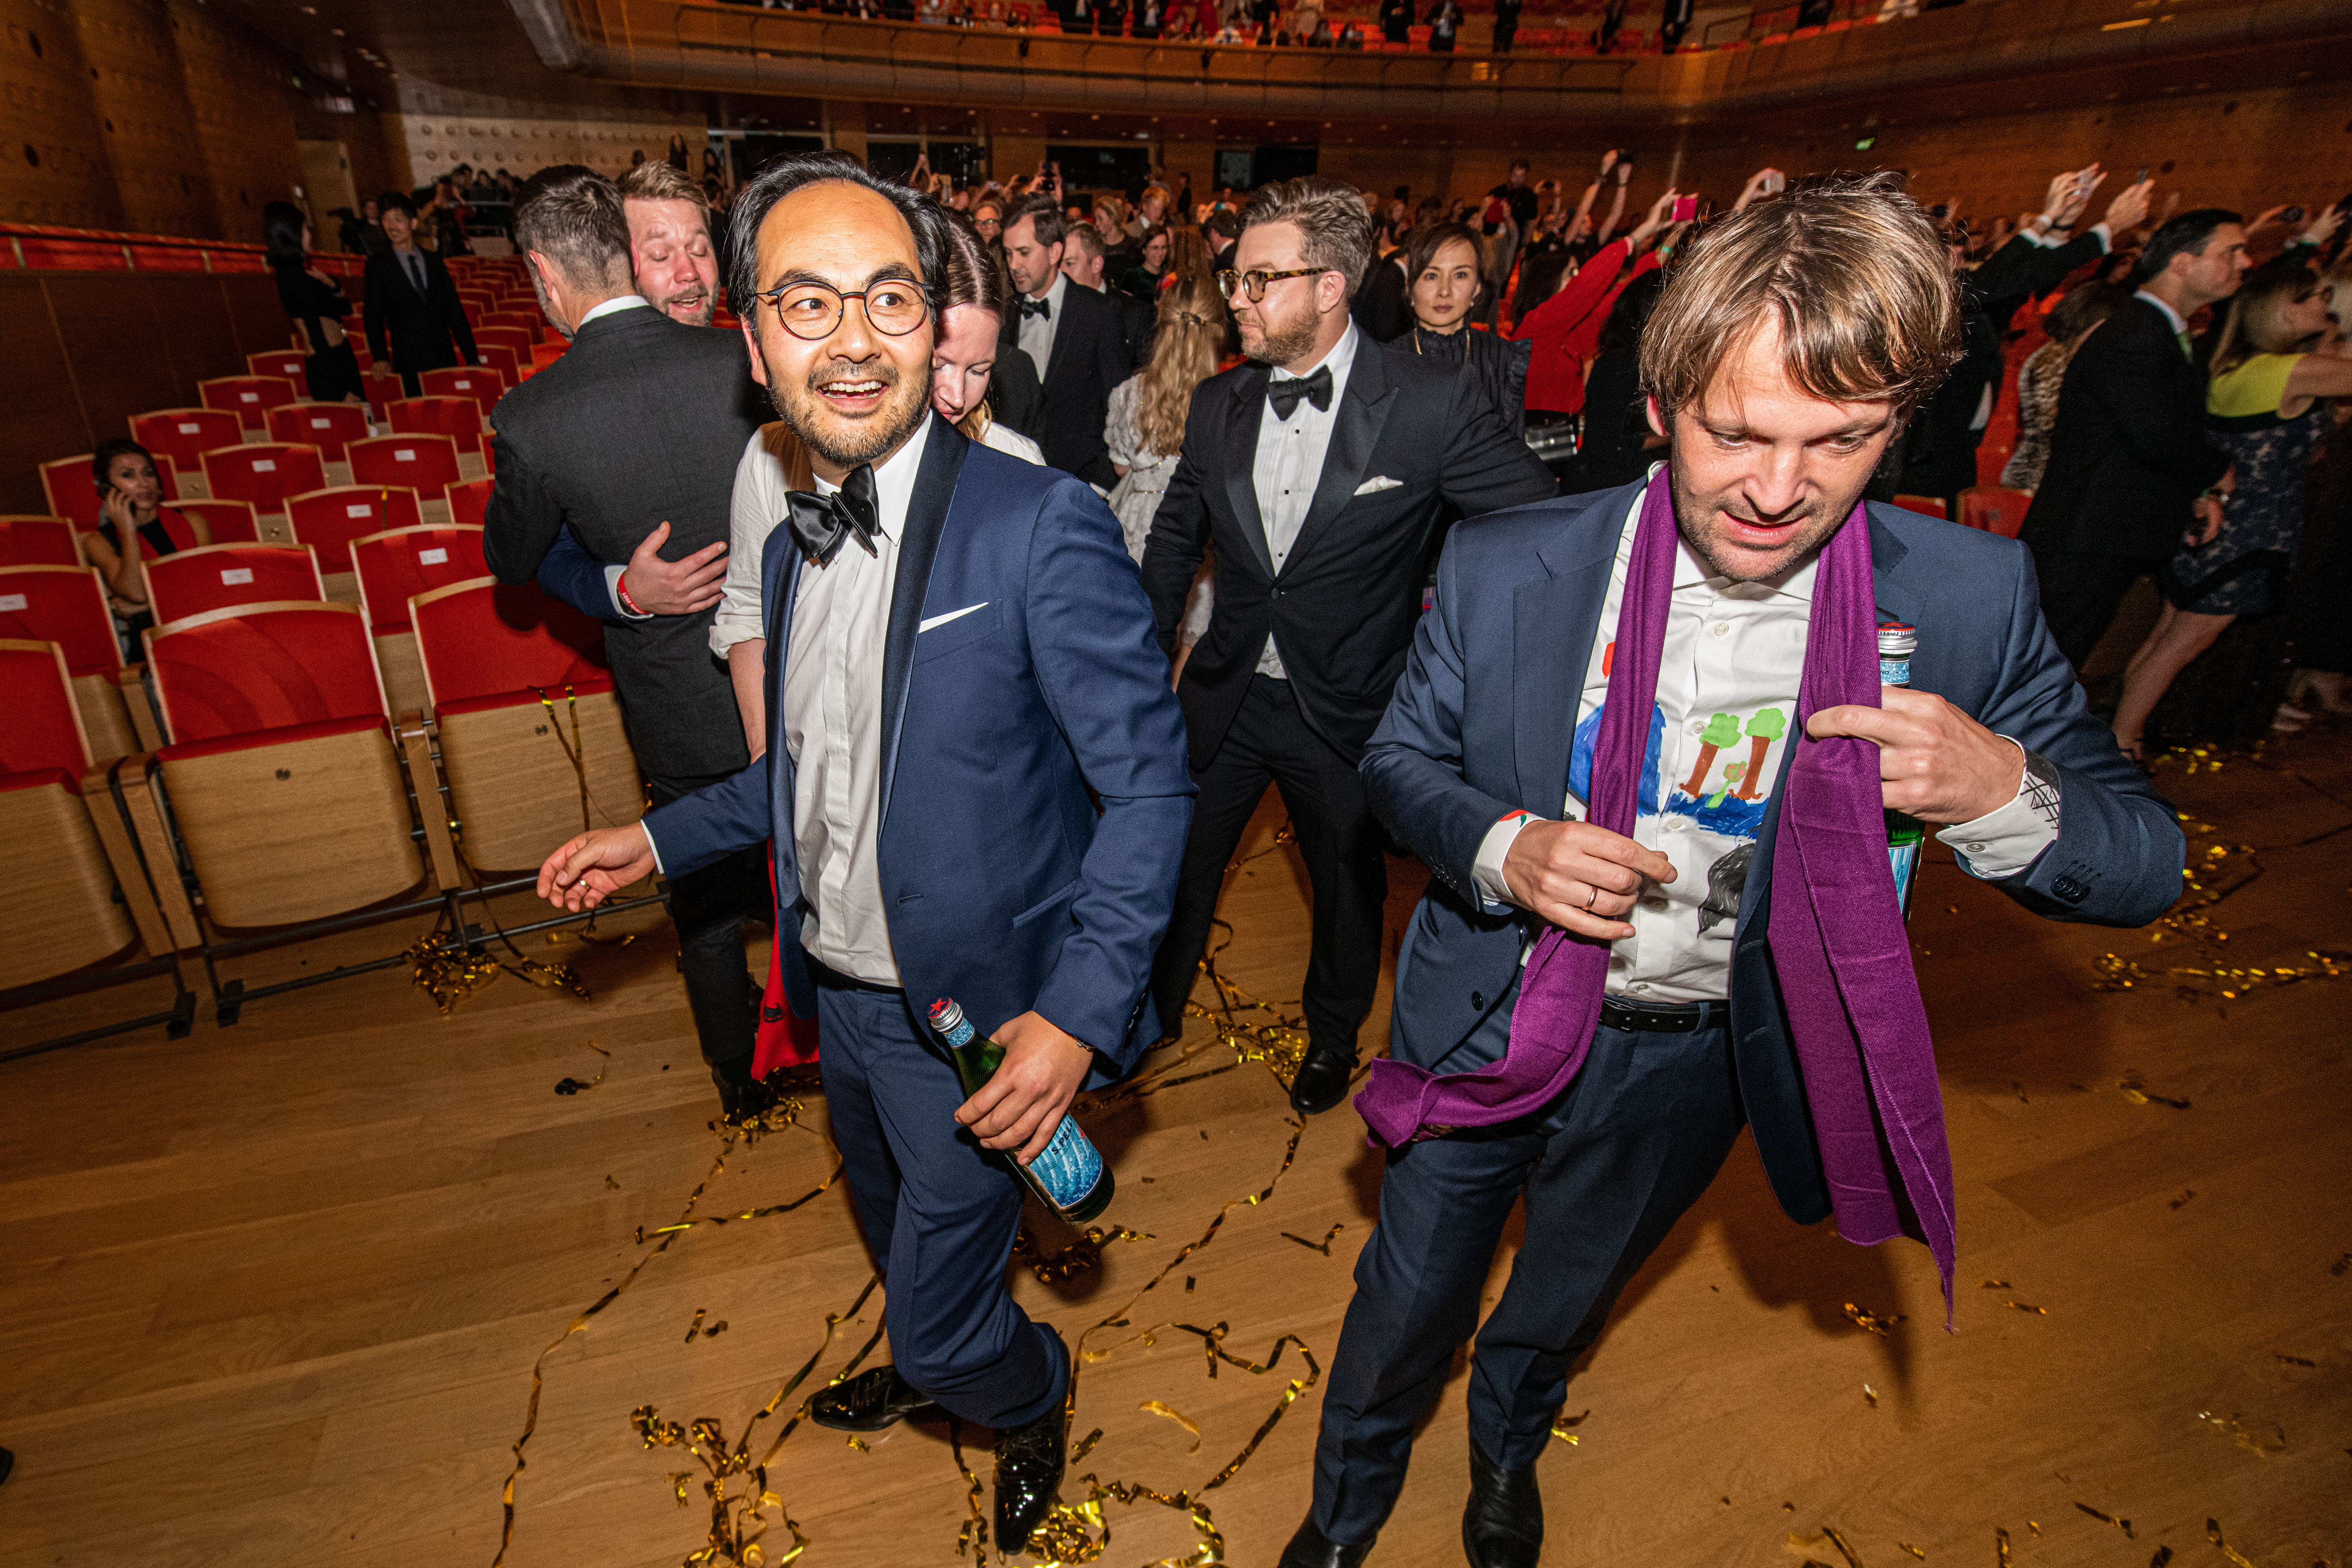 René Redzepi and the Noma crew celebrate at the World's 50 Best Awards ceremony.